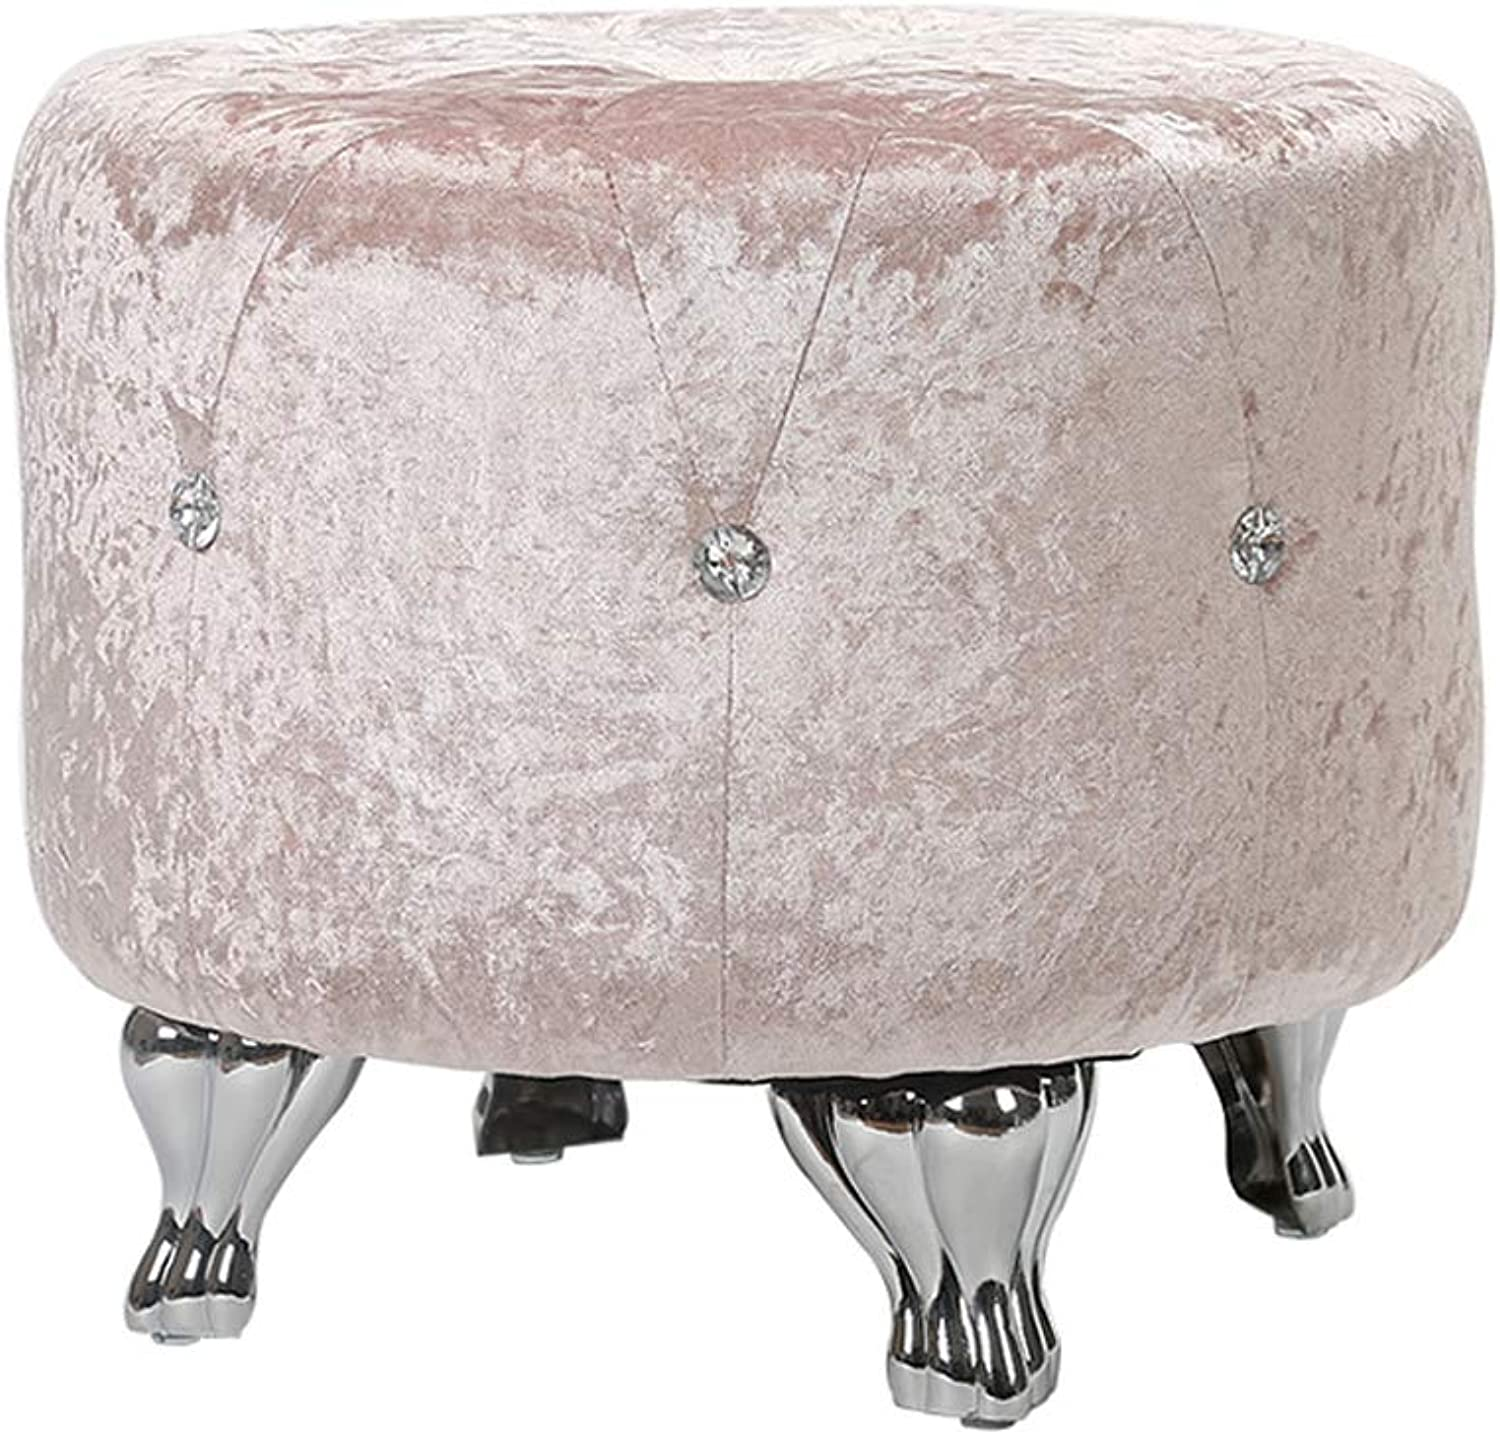 European Style Dressing Stool Chair Cloth Bench Modern Crystal Sofa Stool for shoes Change Make Up (color   D)